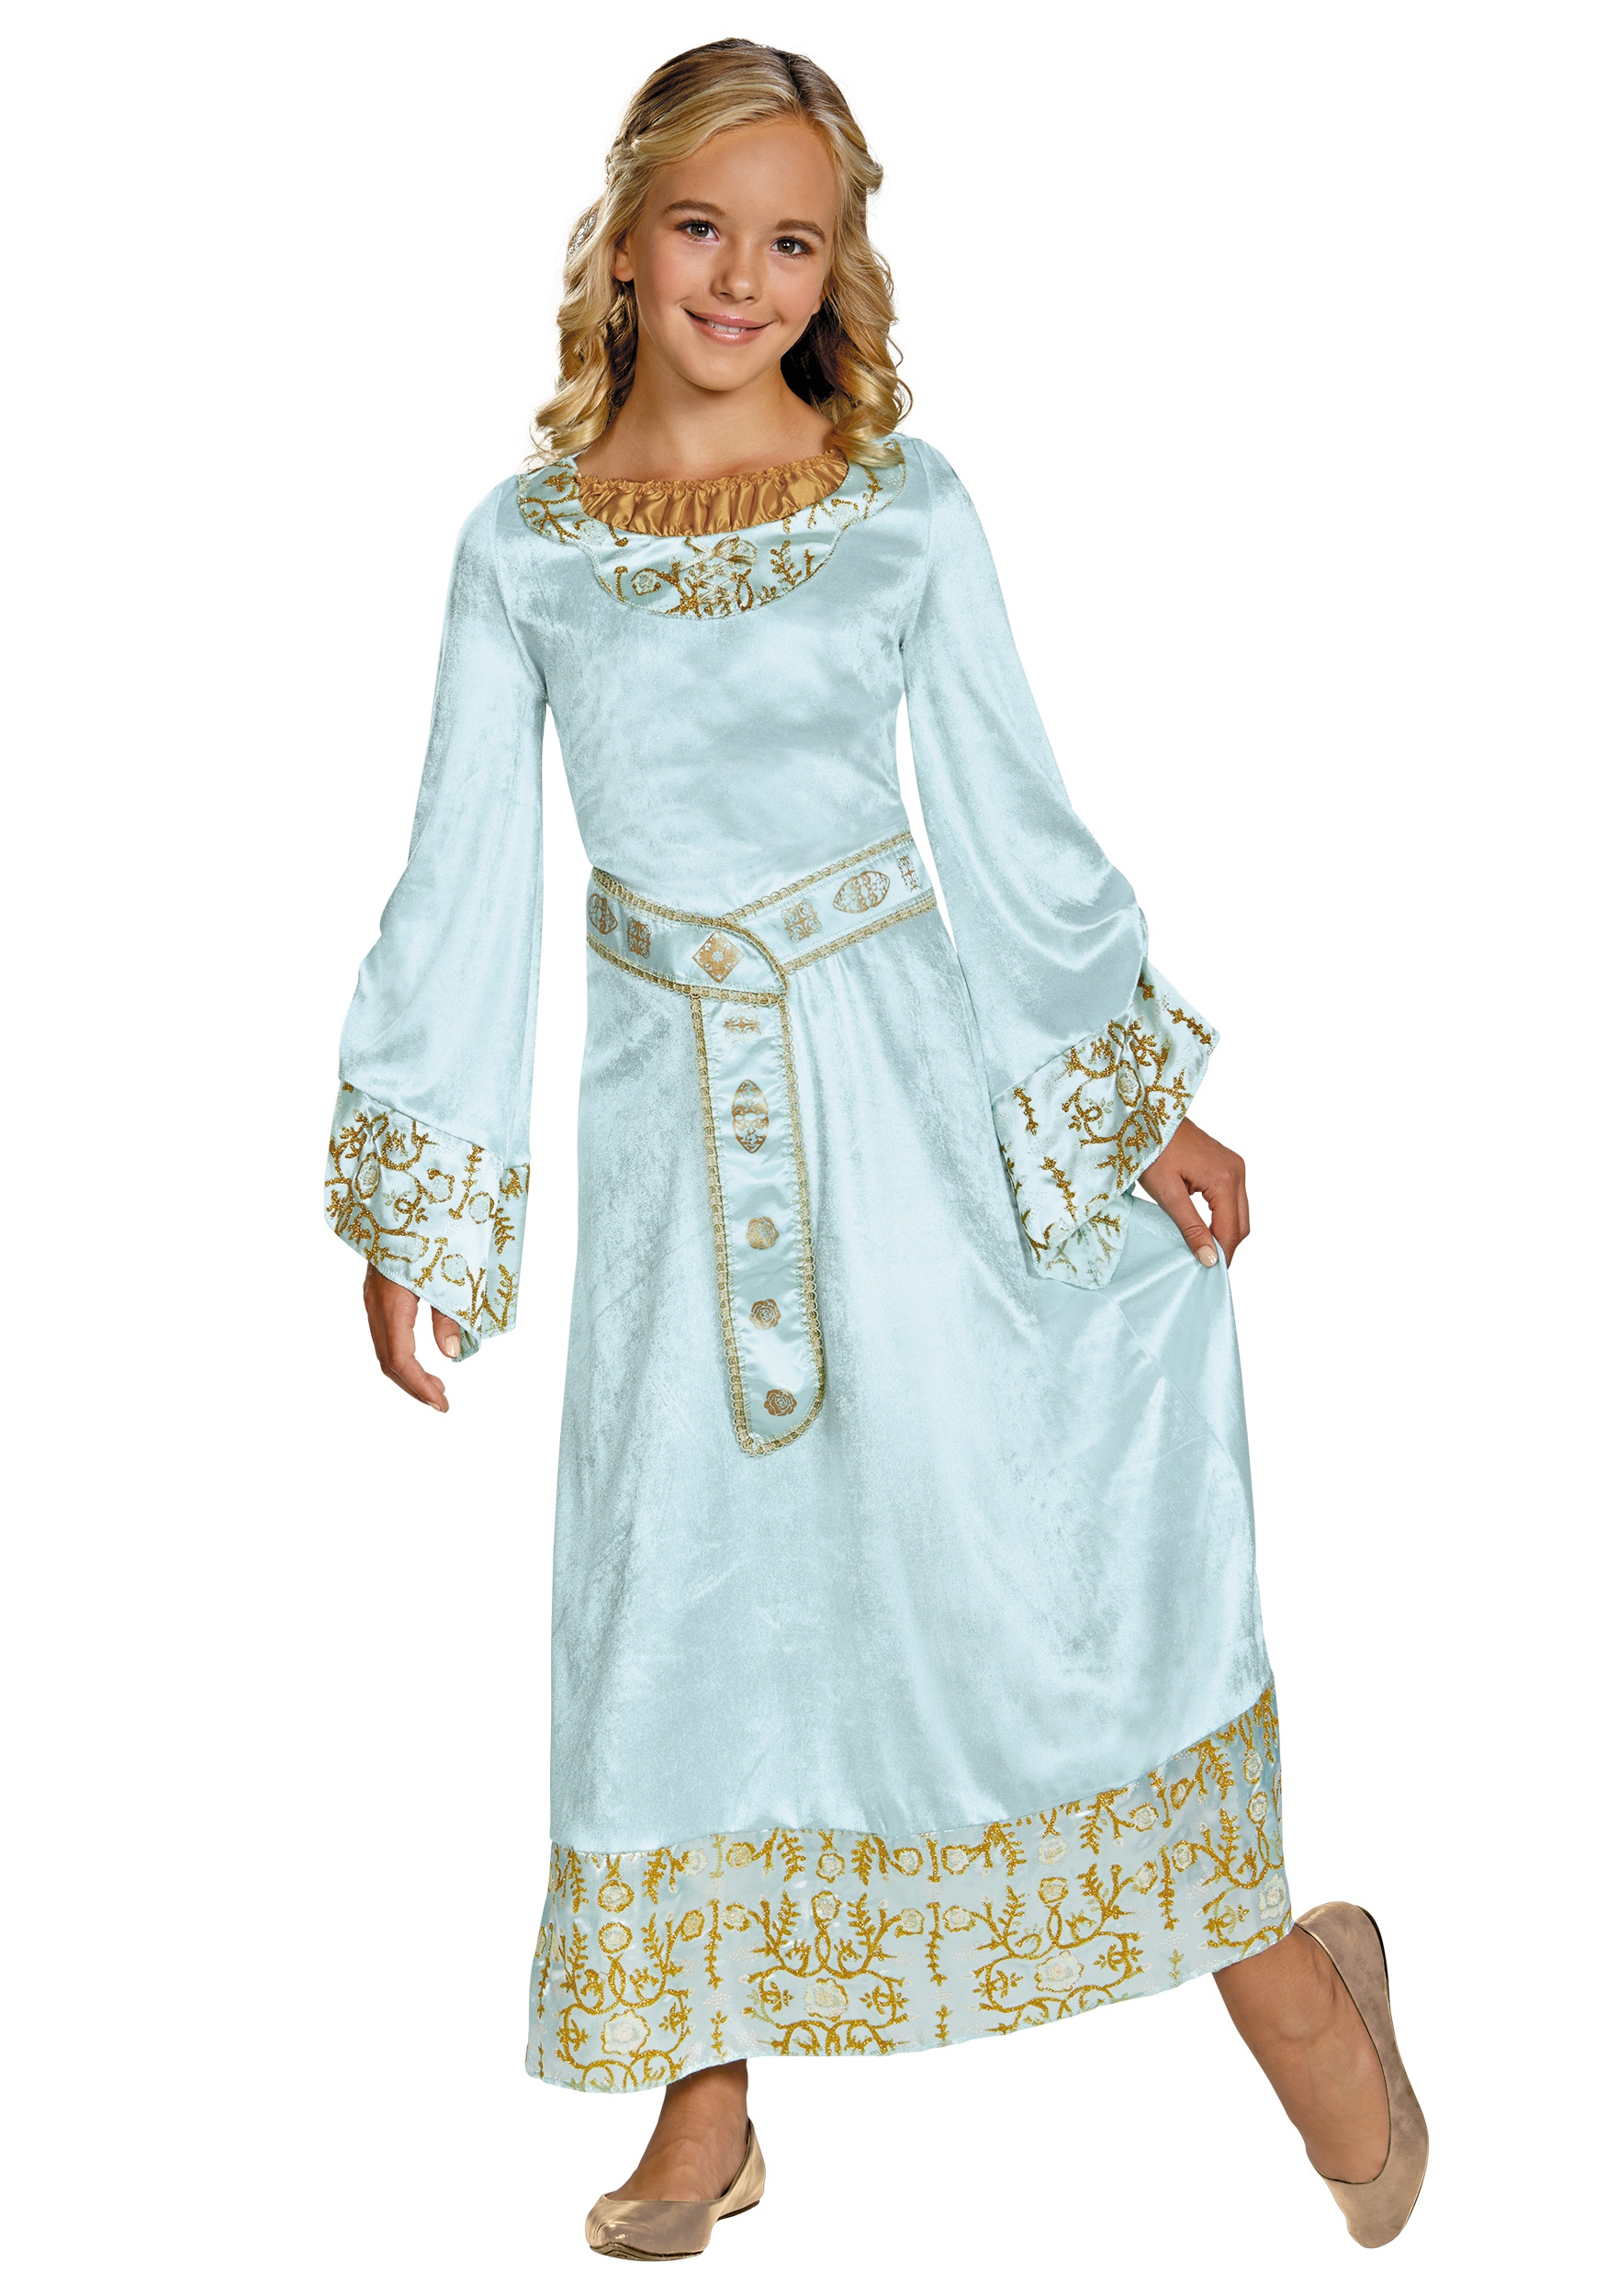 Girls Deluxe Aurora Blue Dress Costume  sc 1 st  Halloween Costumes : toddler aurora costume  - Germanpascual.Com